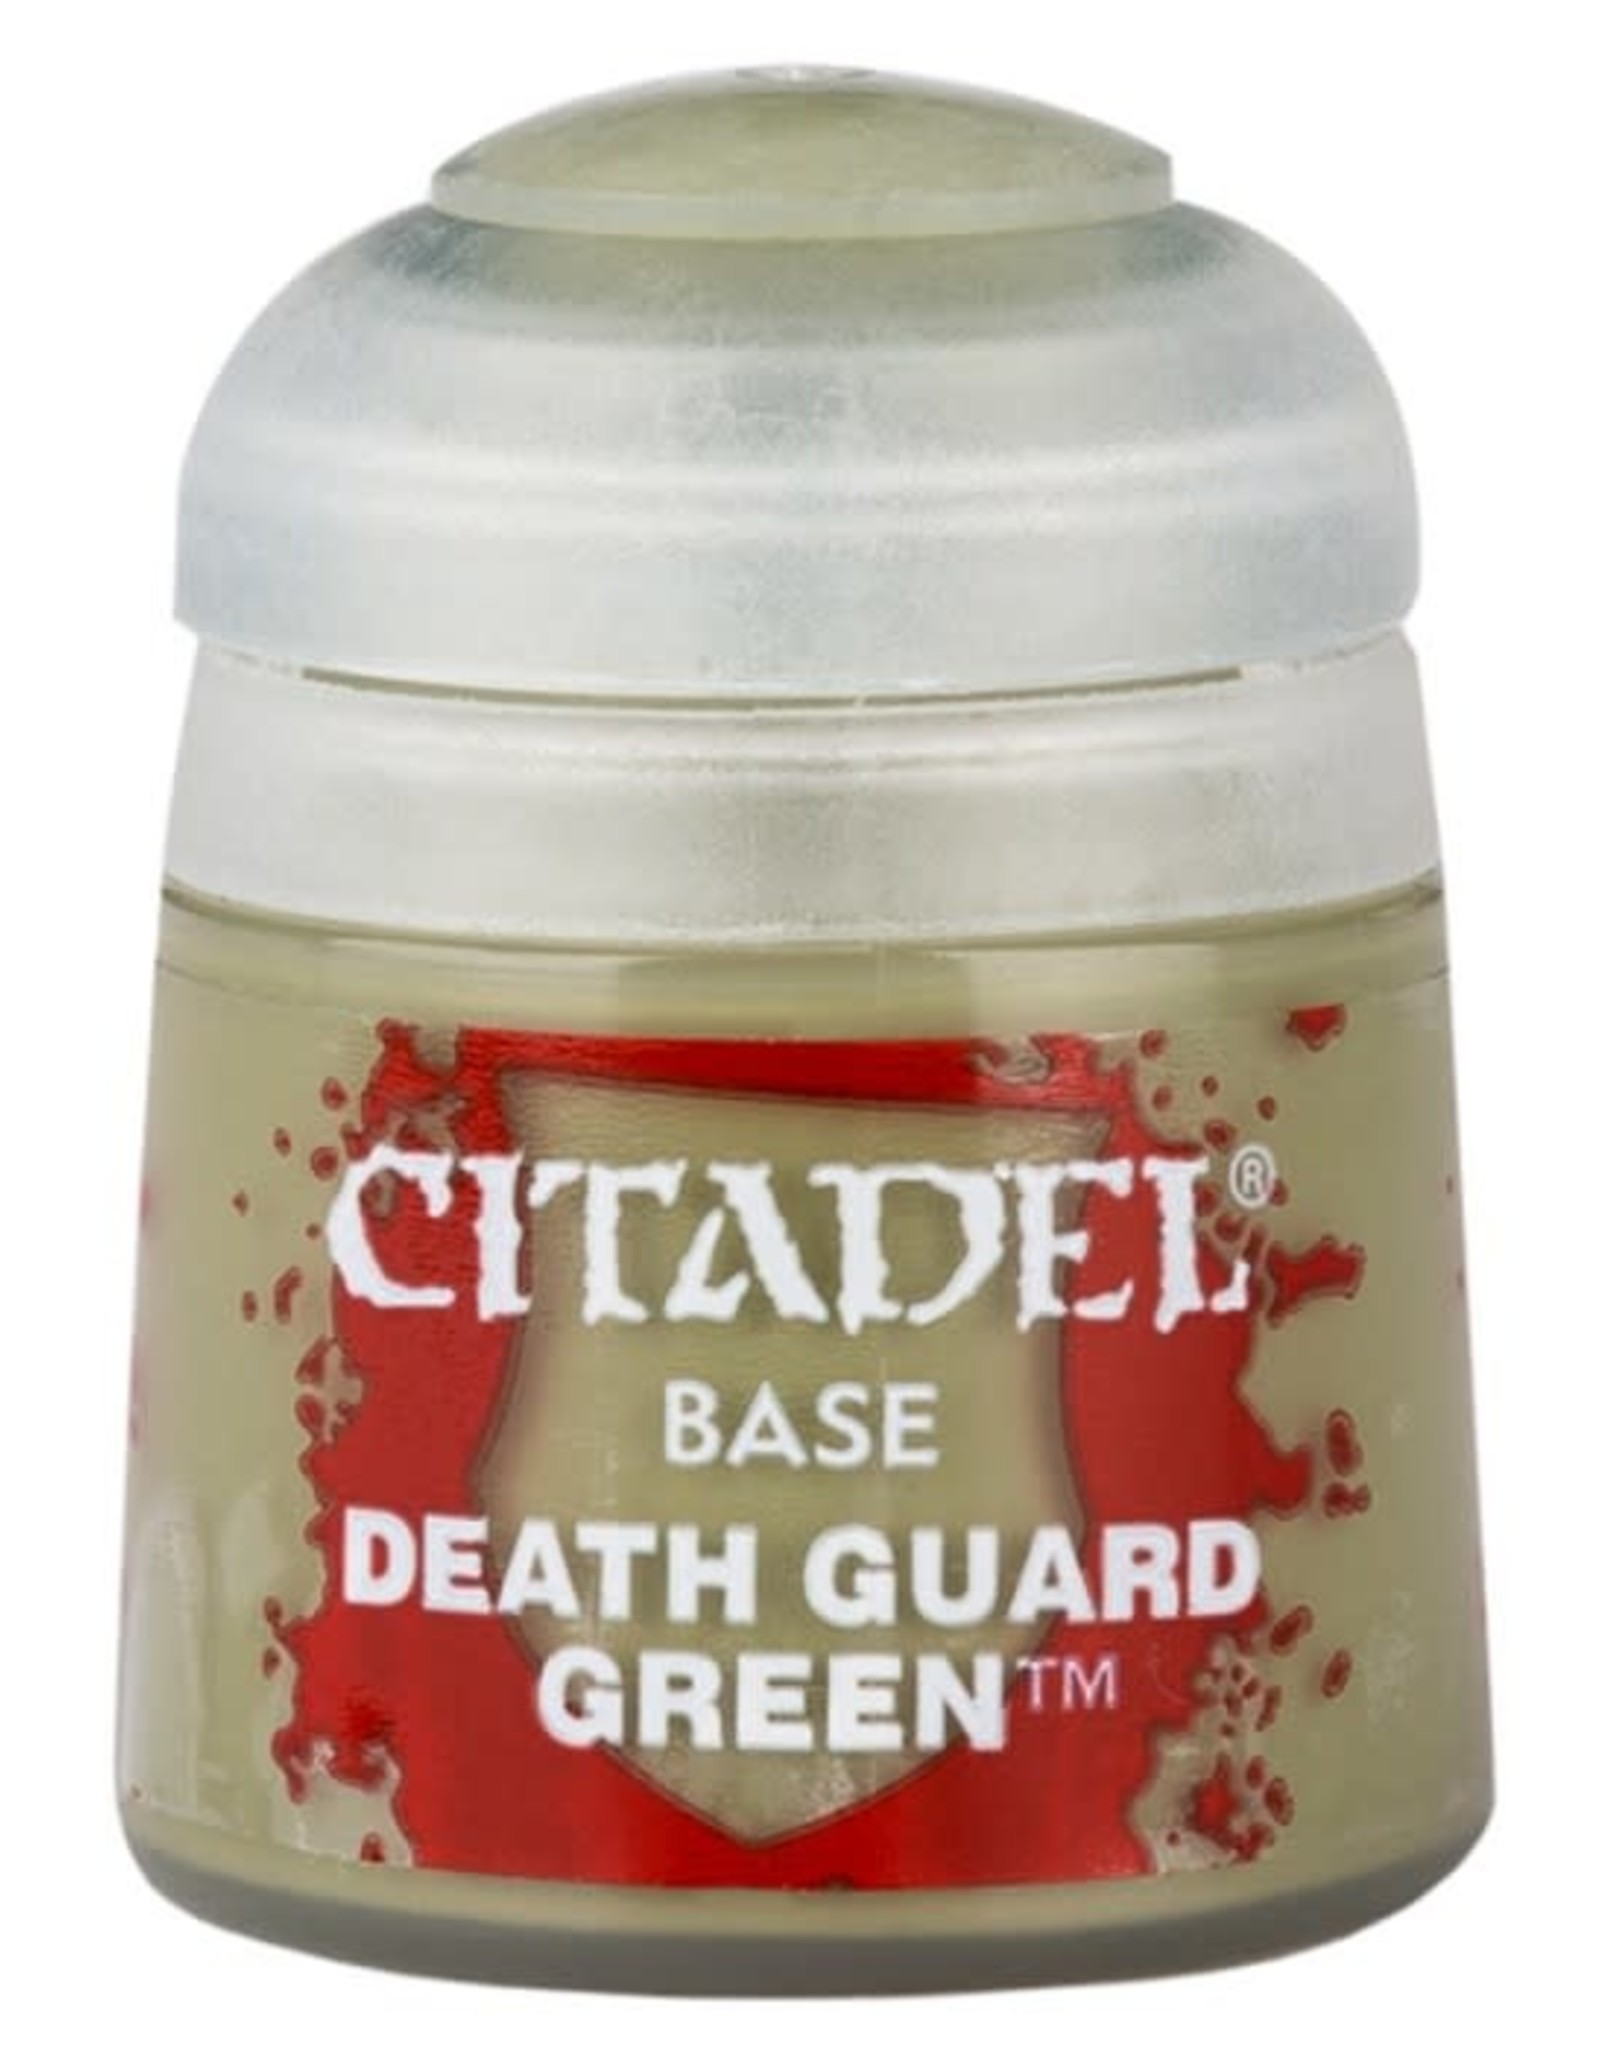 Games Workshop Citadel Paint: Base - Death Guard Green 12ml